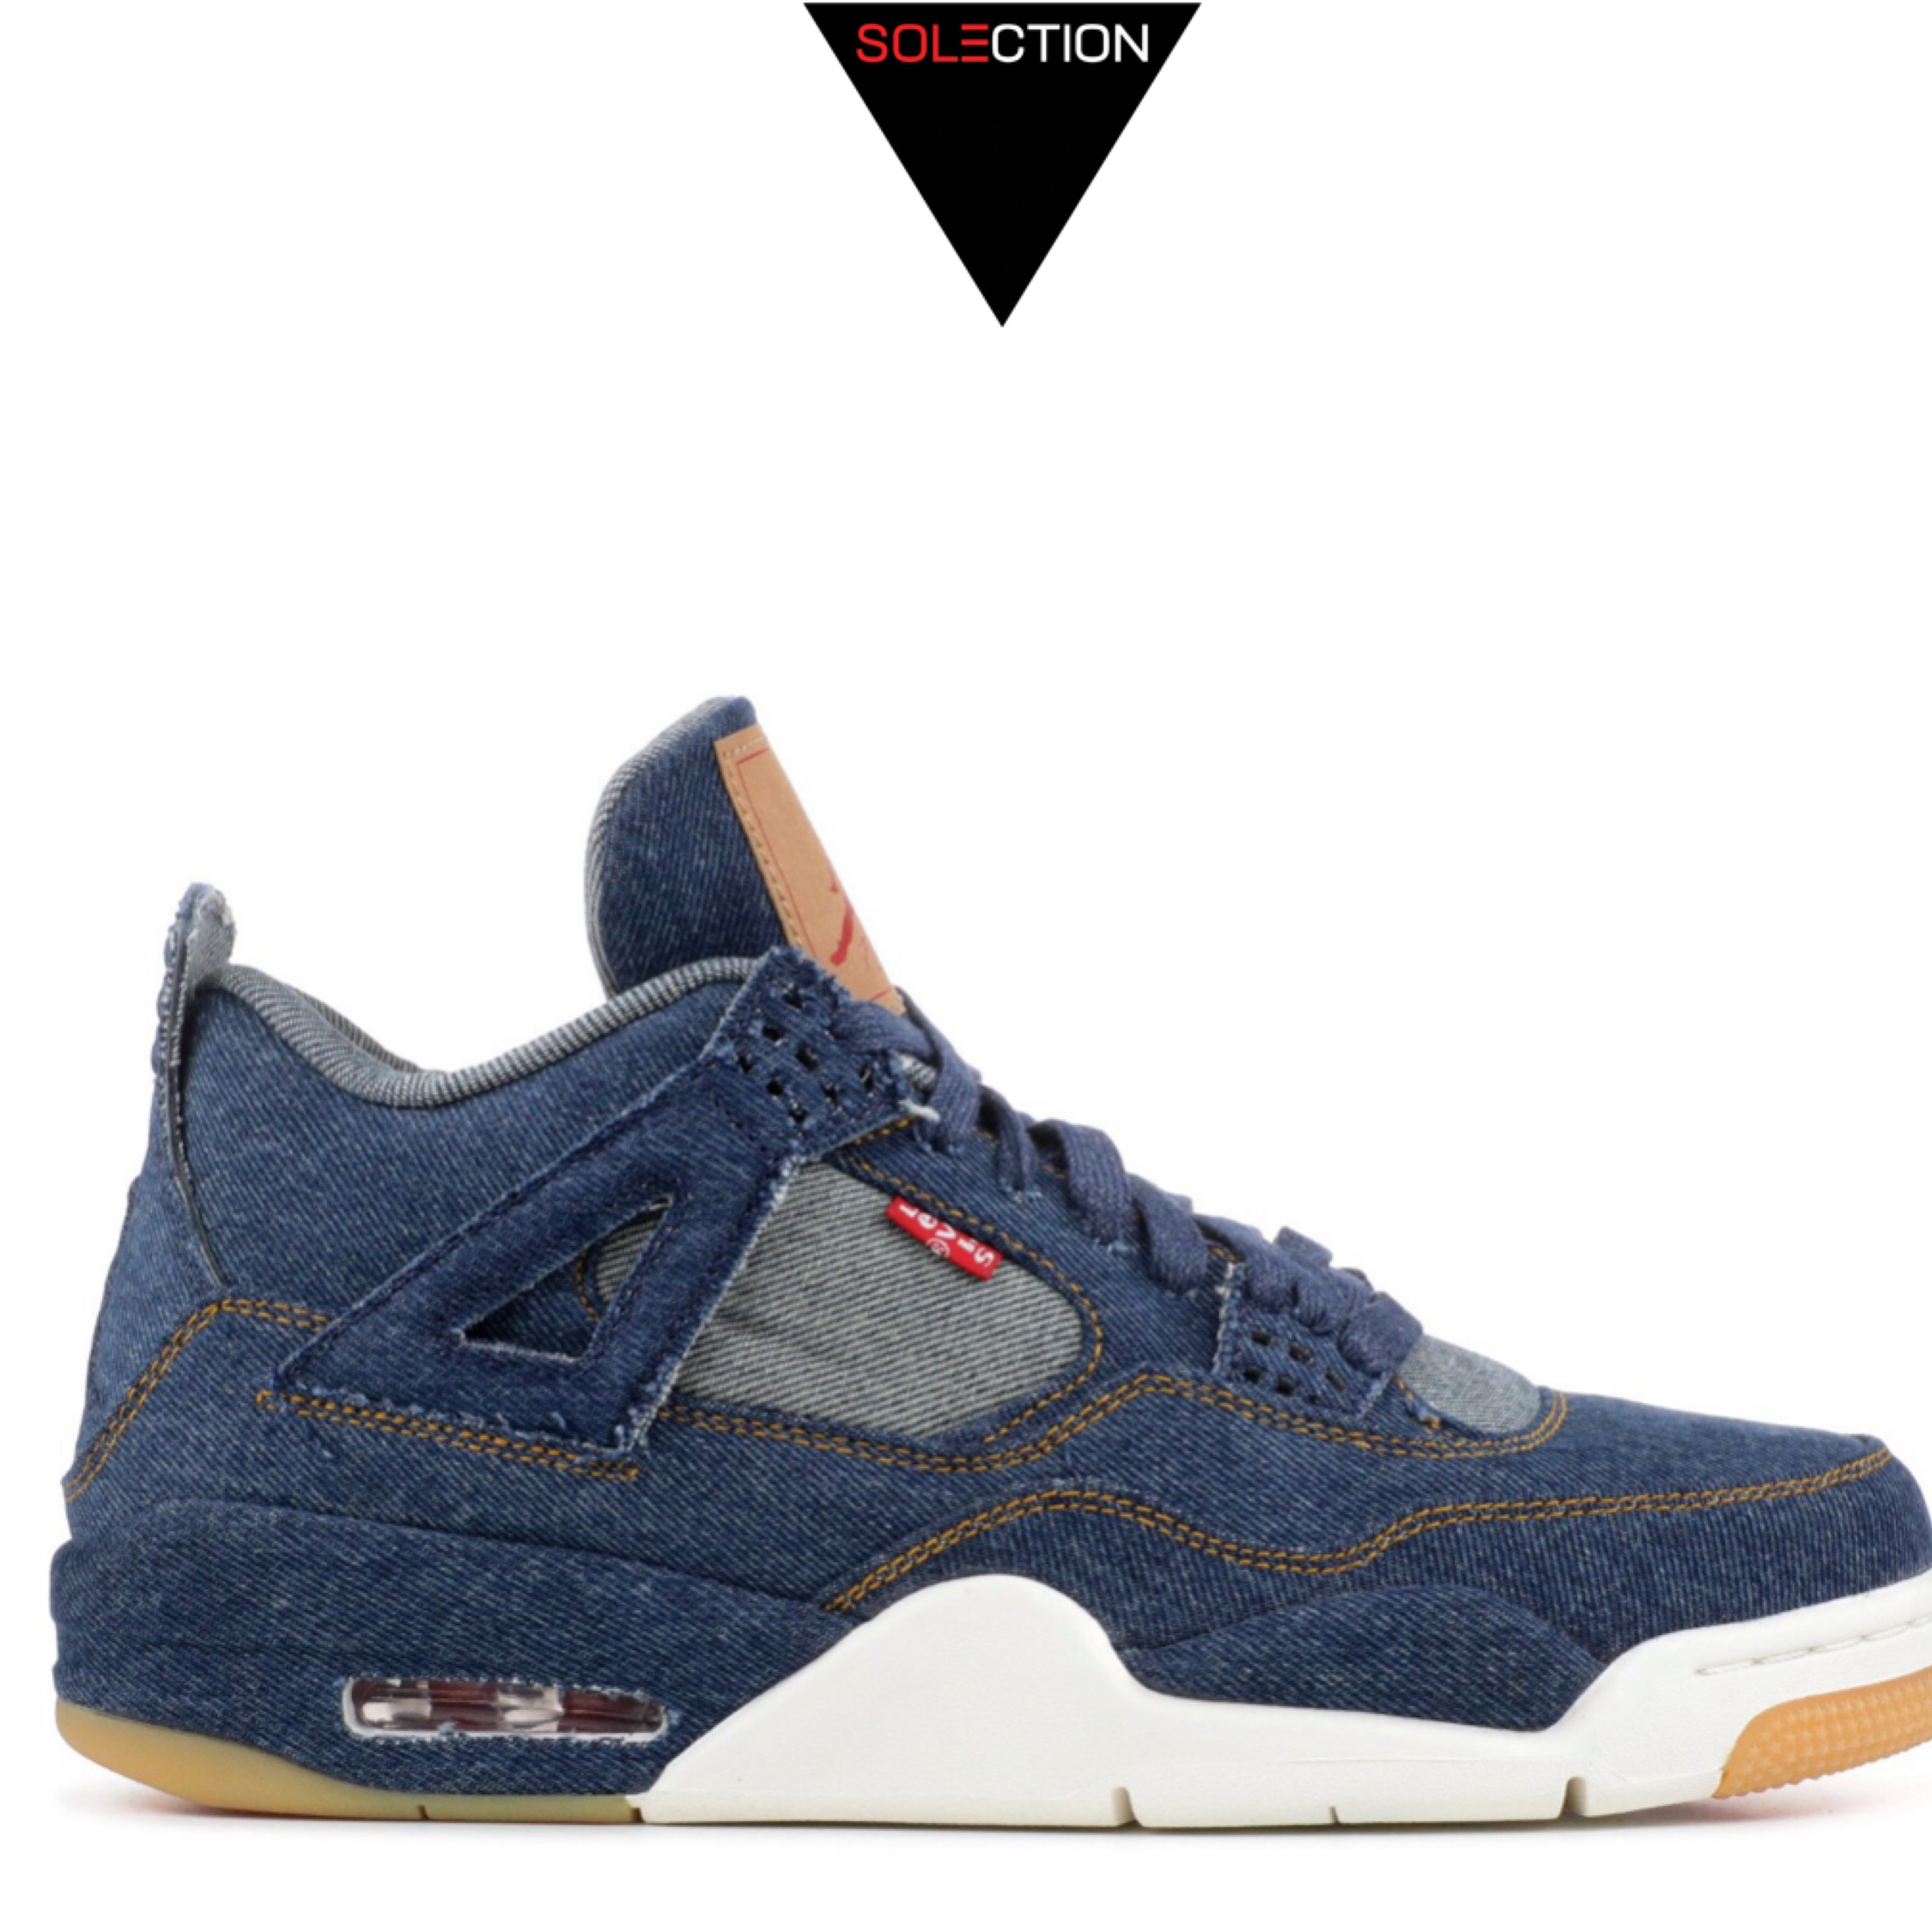 meilleur authentique af676 b9ca9 Nike Air Jordan Retro 4 Levin Denim